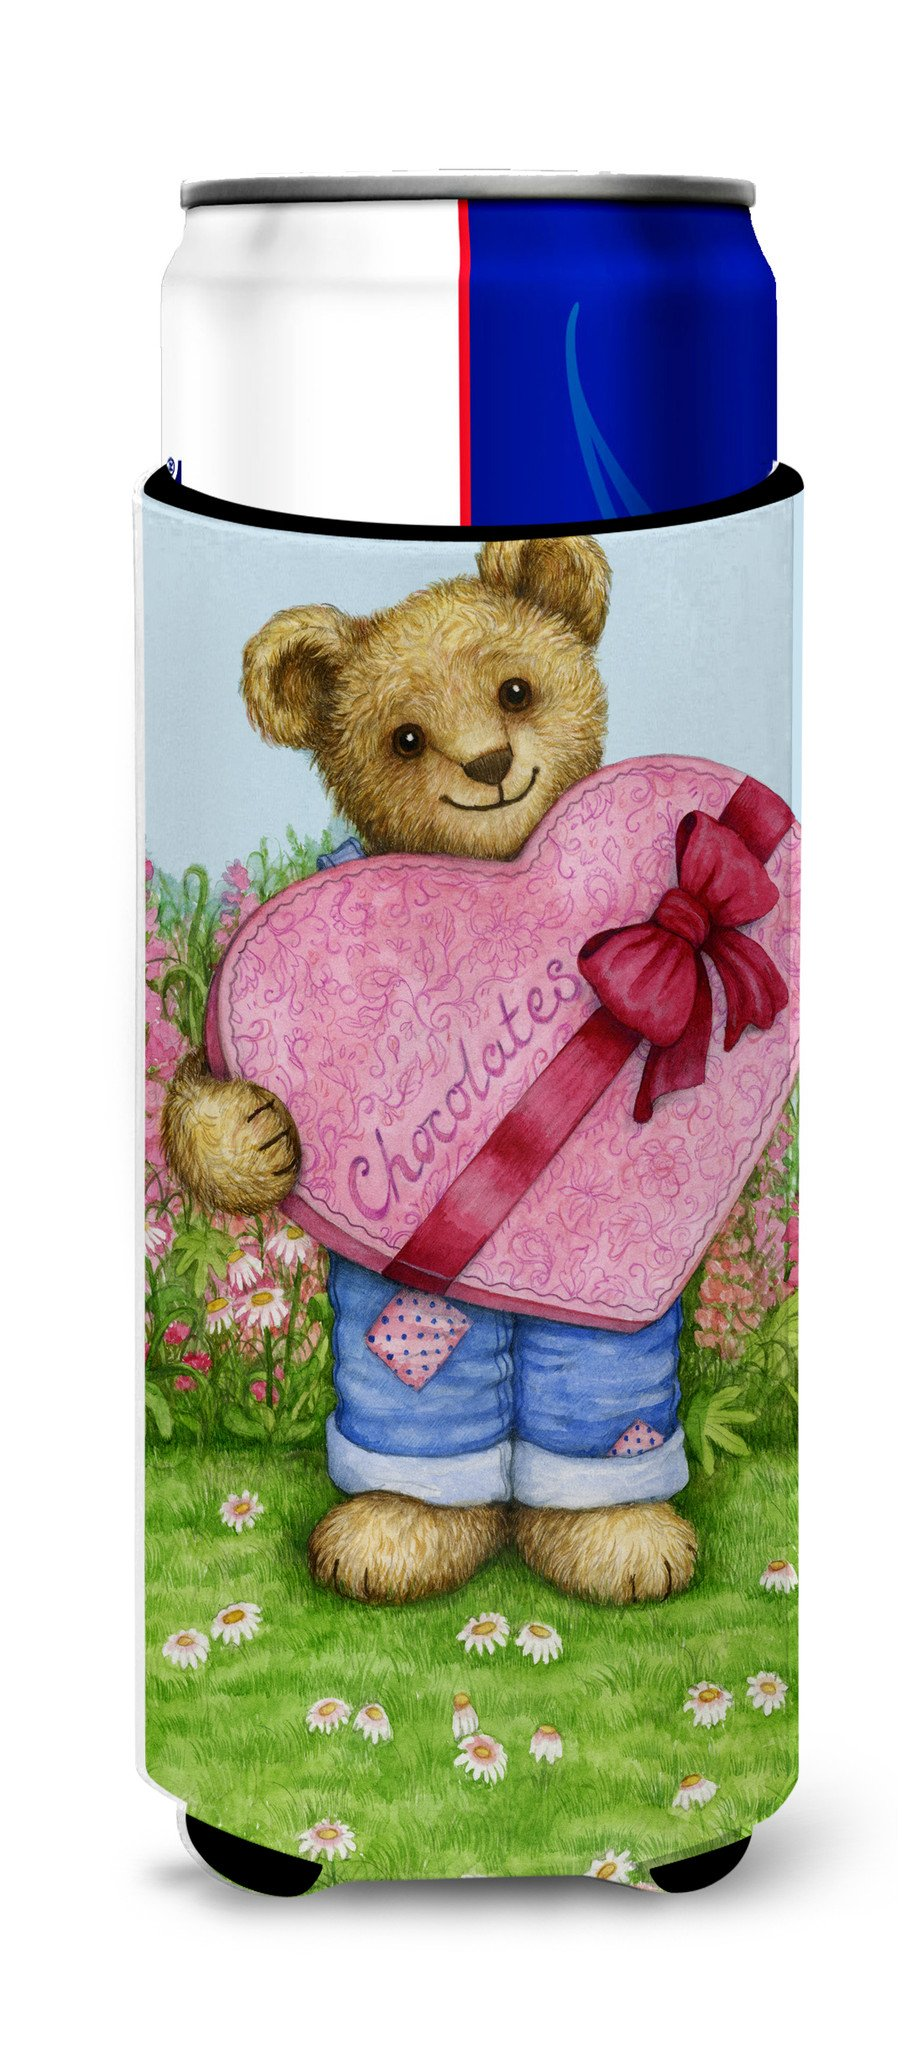 Valentine Teddy Bear with Chocolates Ultra Beverage Insulators for slim cans CDCO318AMUK by Caroline's Treasures